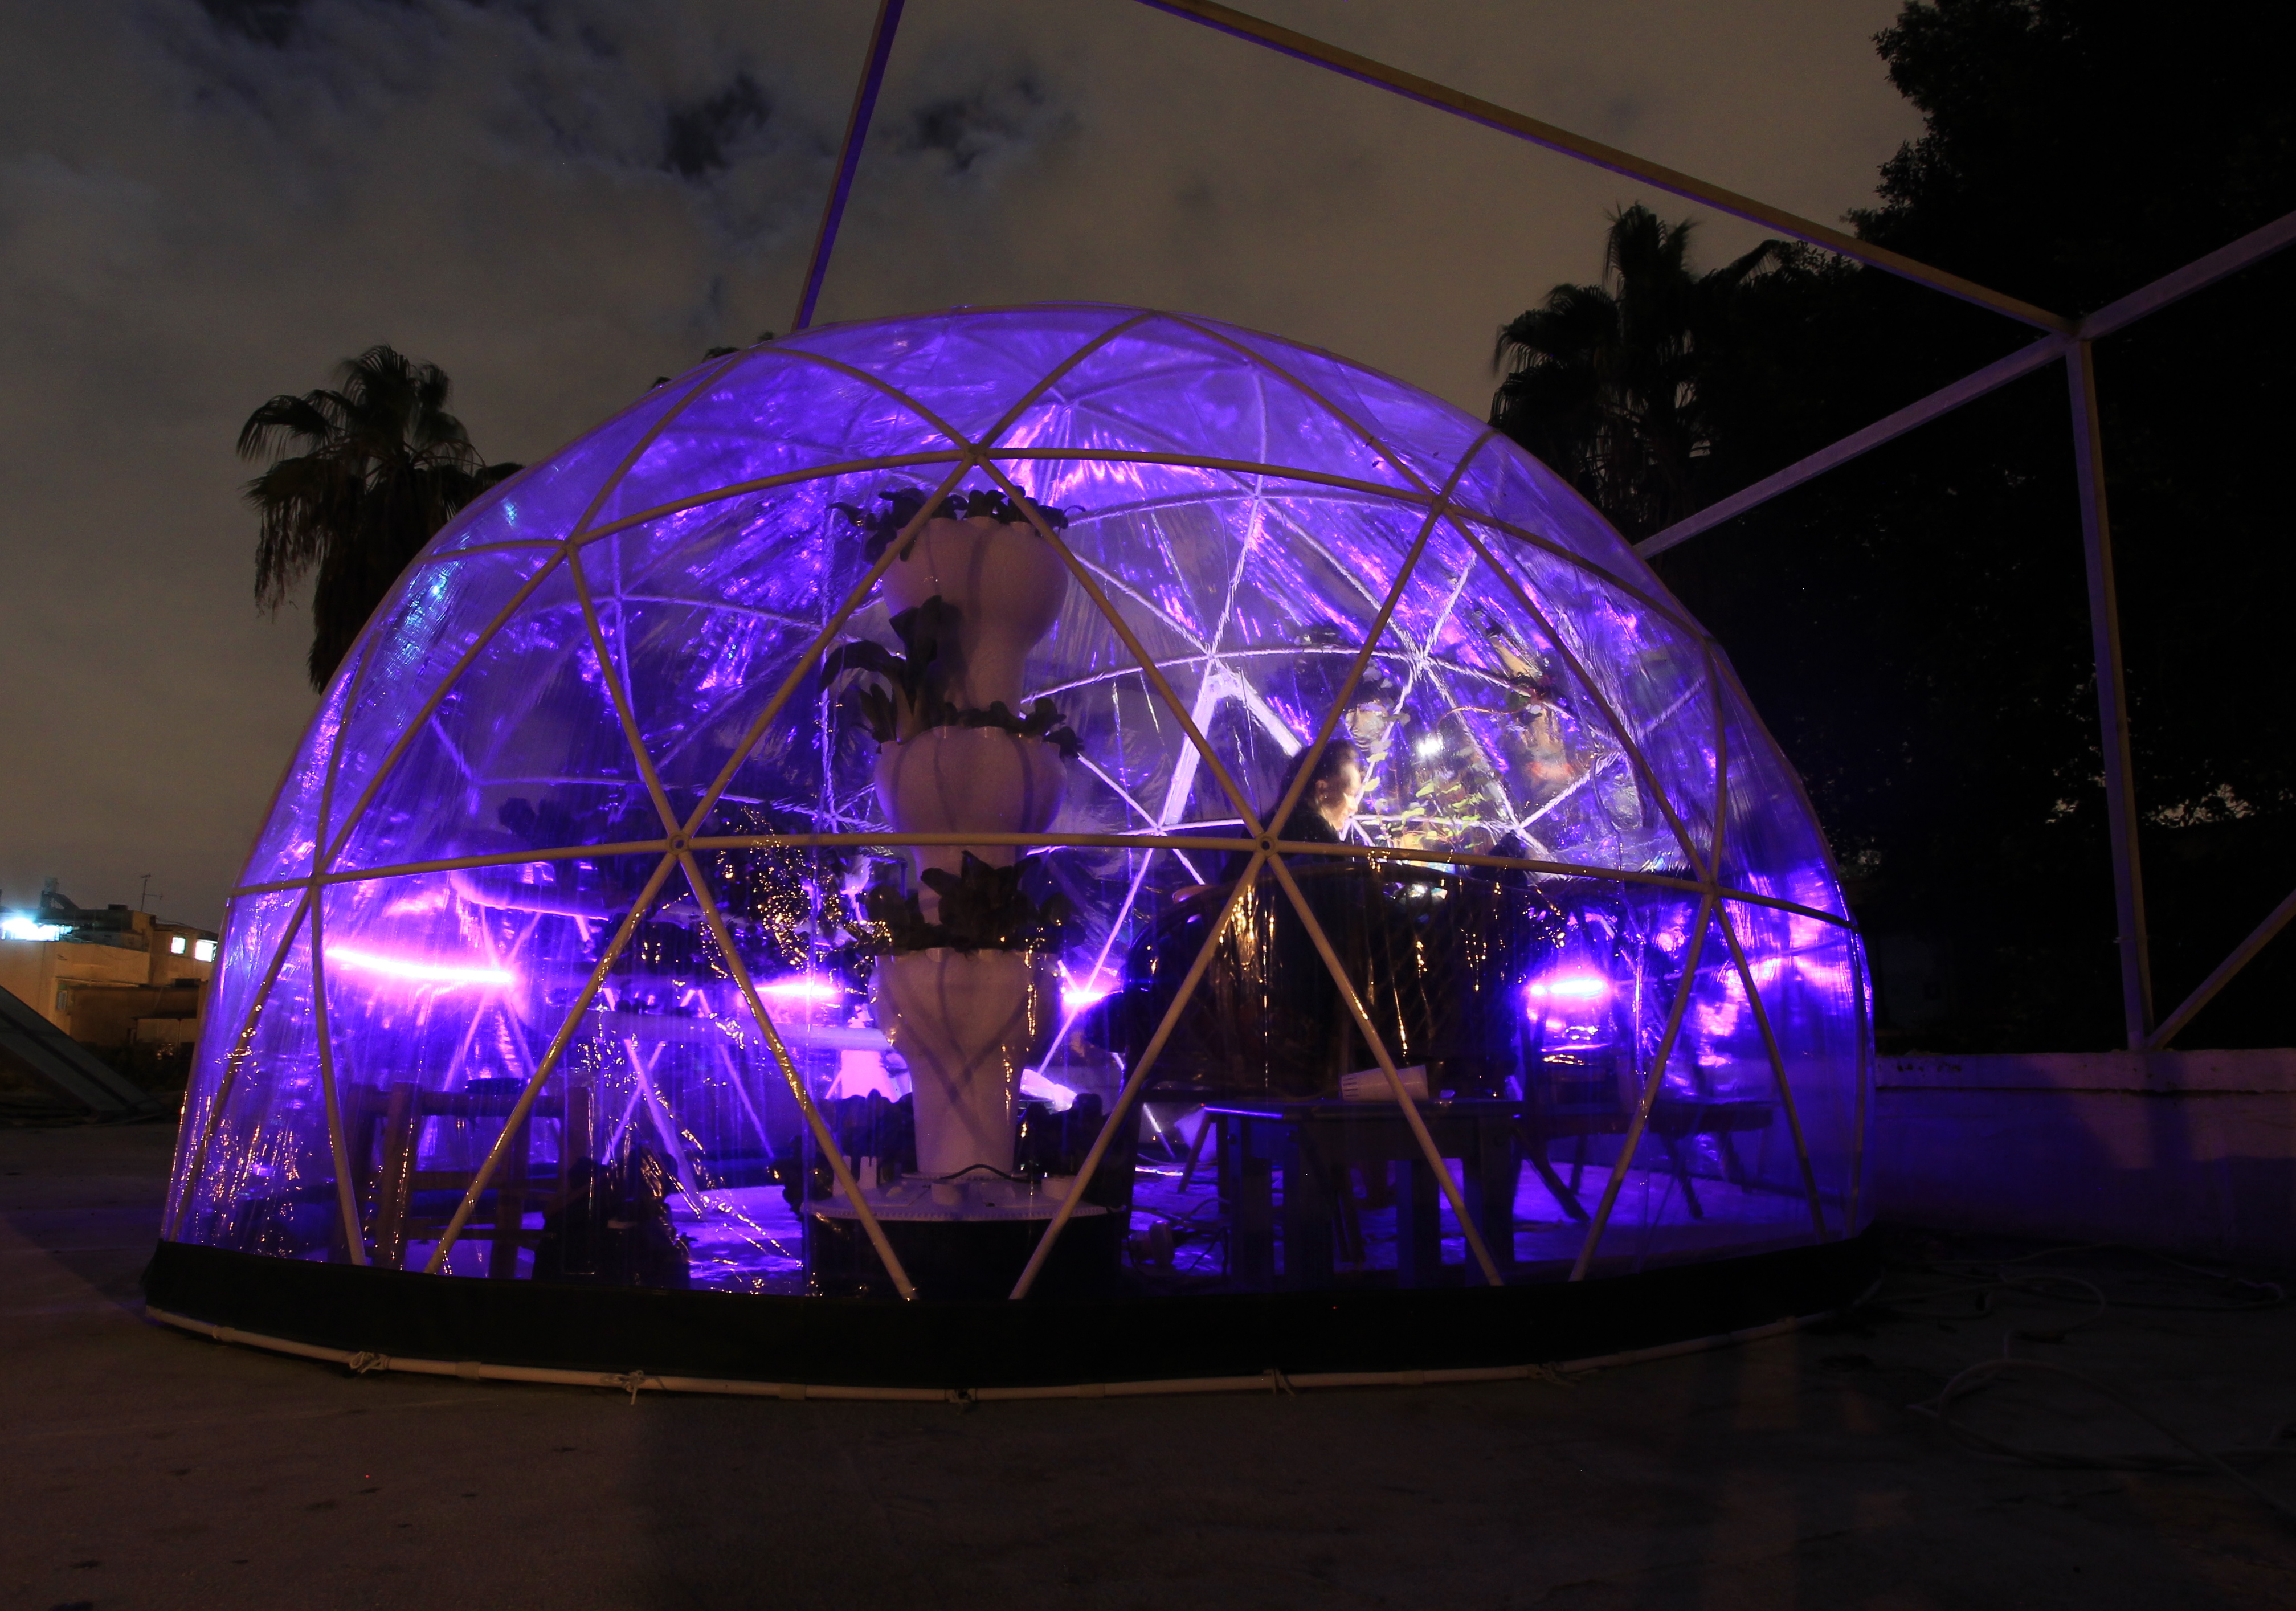 hydroponics greenhouse. My Garden Igloo biodome ... & Garden Igloo: Grow tasty food and cannabis in this modern biodome ...